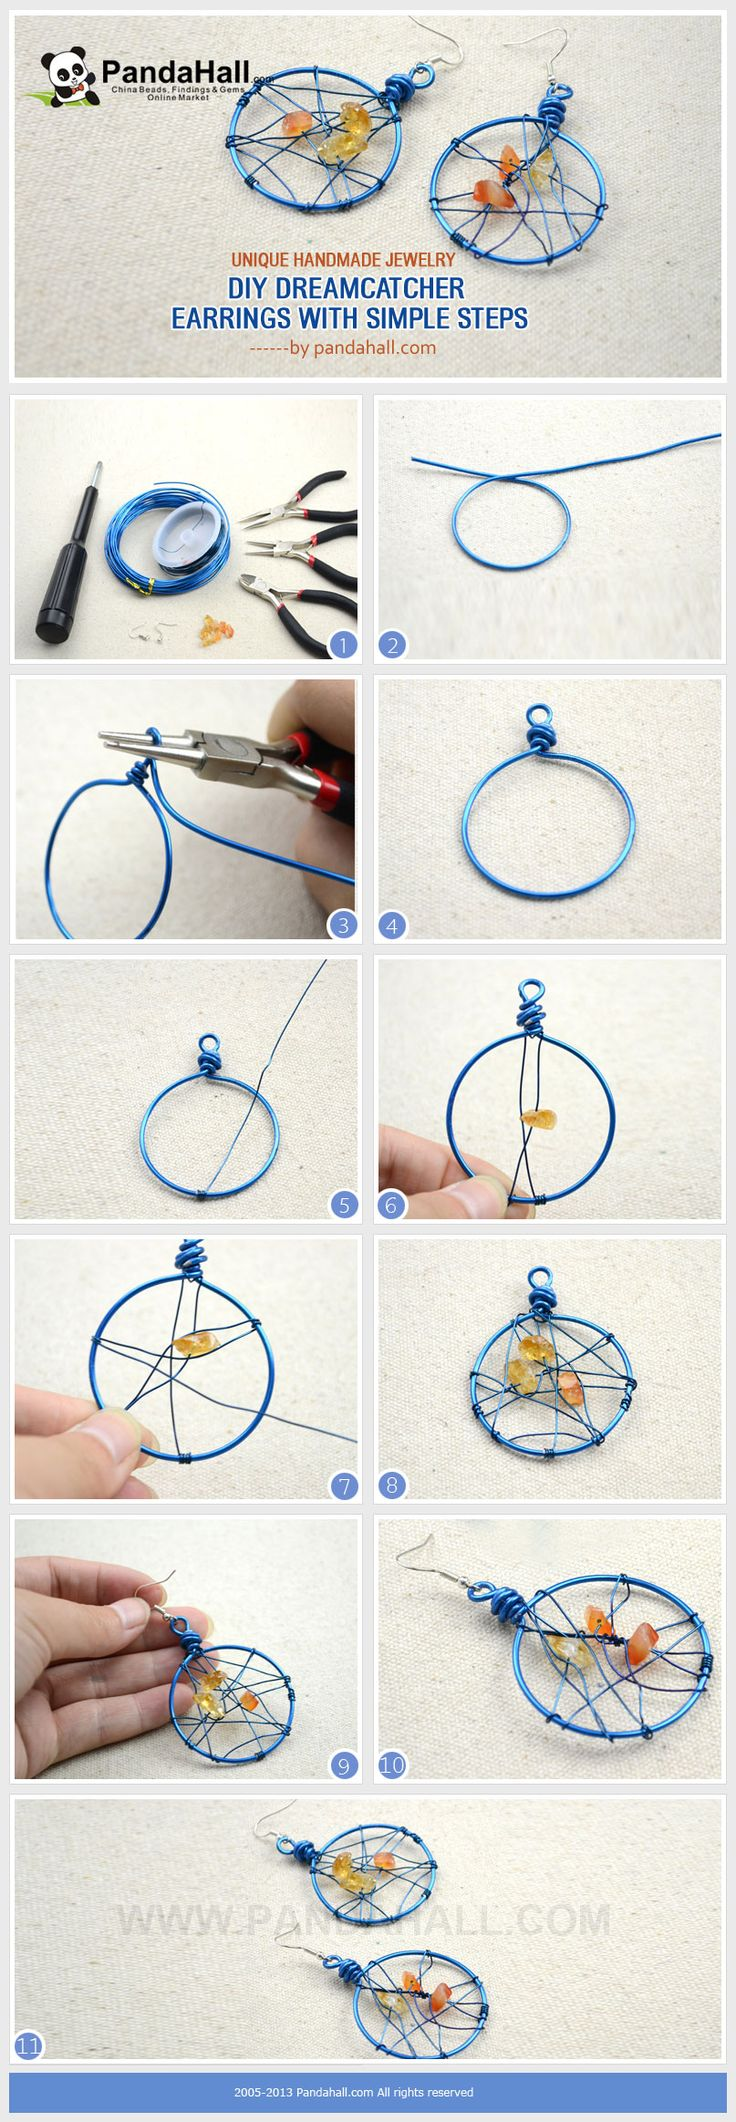 Unique handmade jewelry diy dreamcatcher earrings in 3 for How to make a dreamcatcher step by step